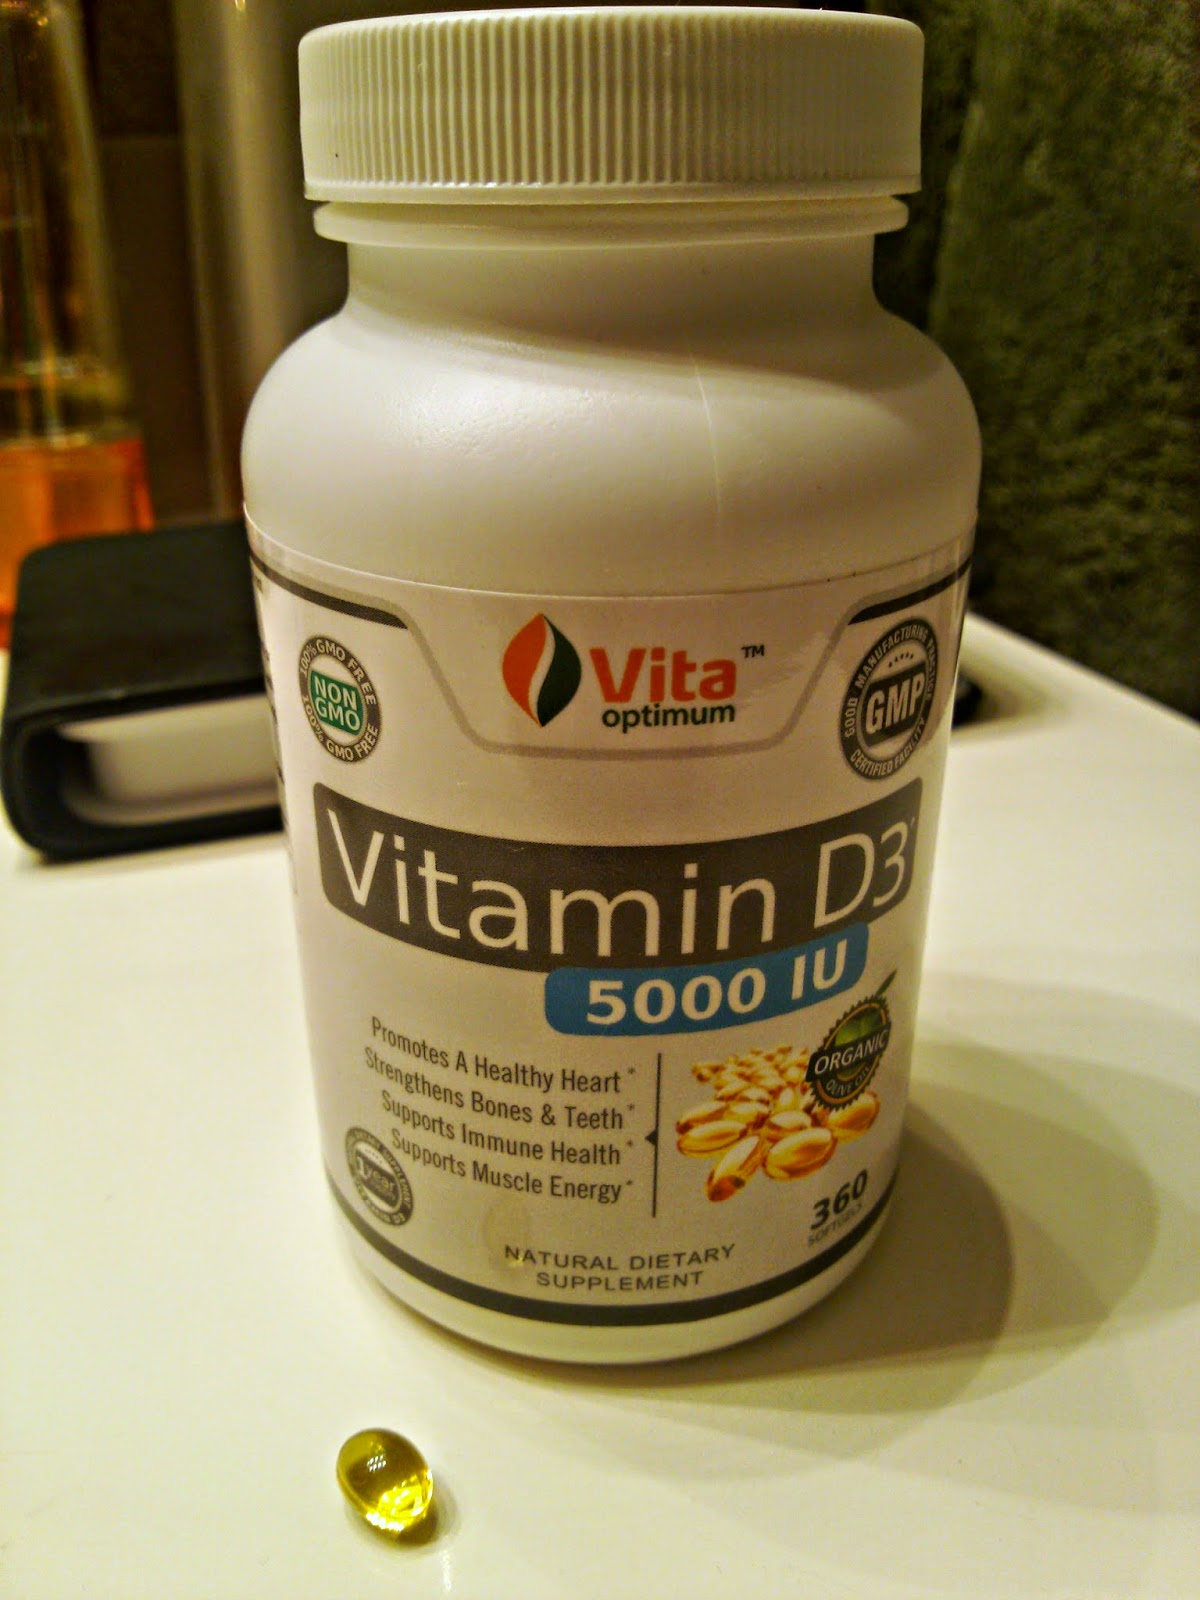 Vita Optimum Vitamin D3 5000 IU Review & Giveaway